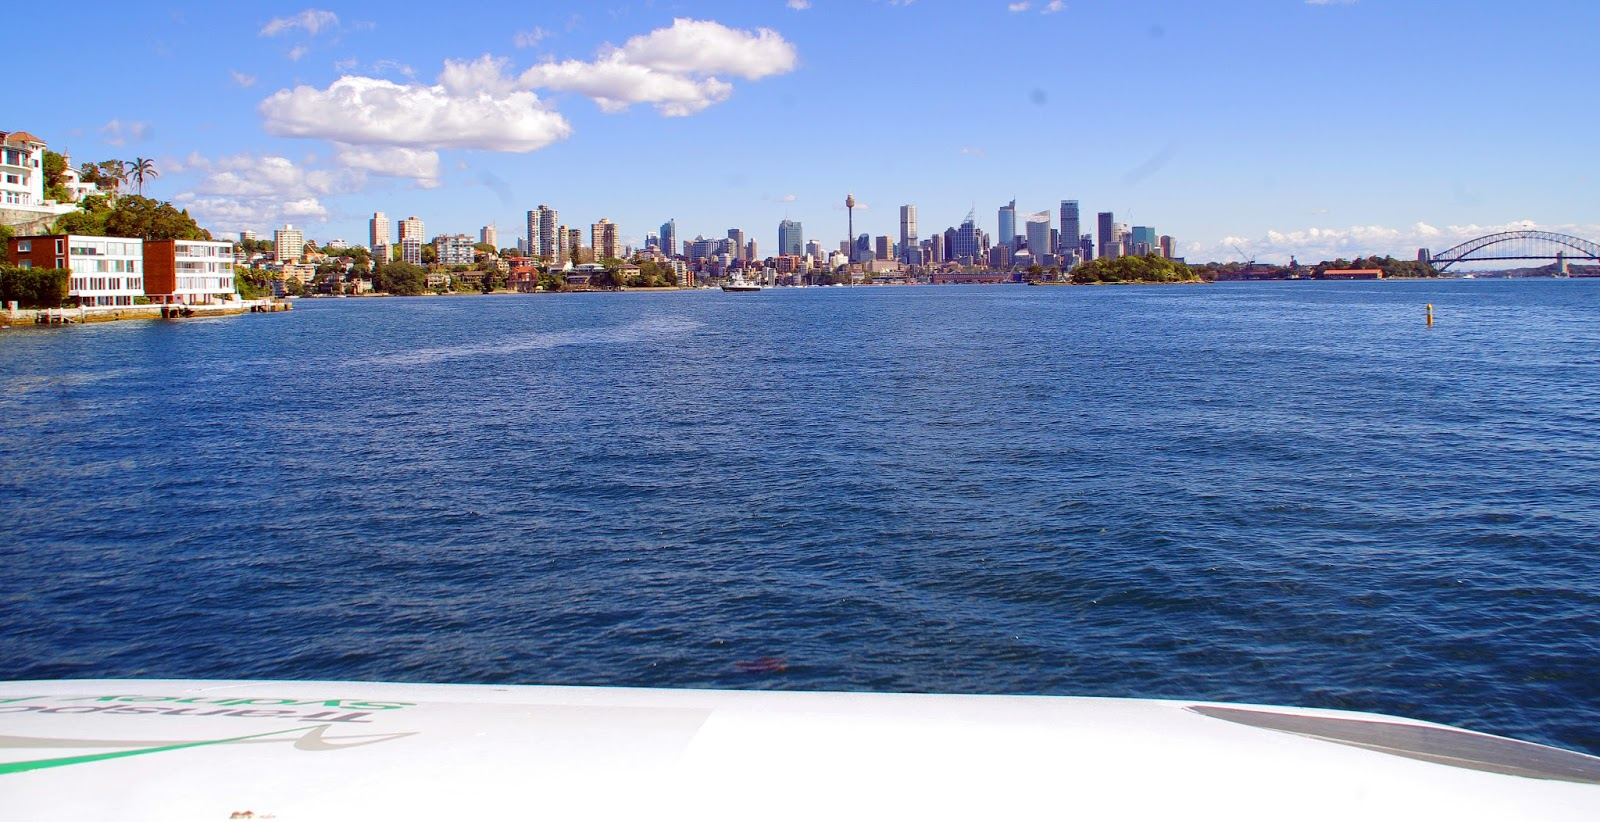 View of Sydney harbour from the ferry